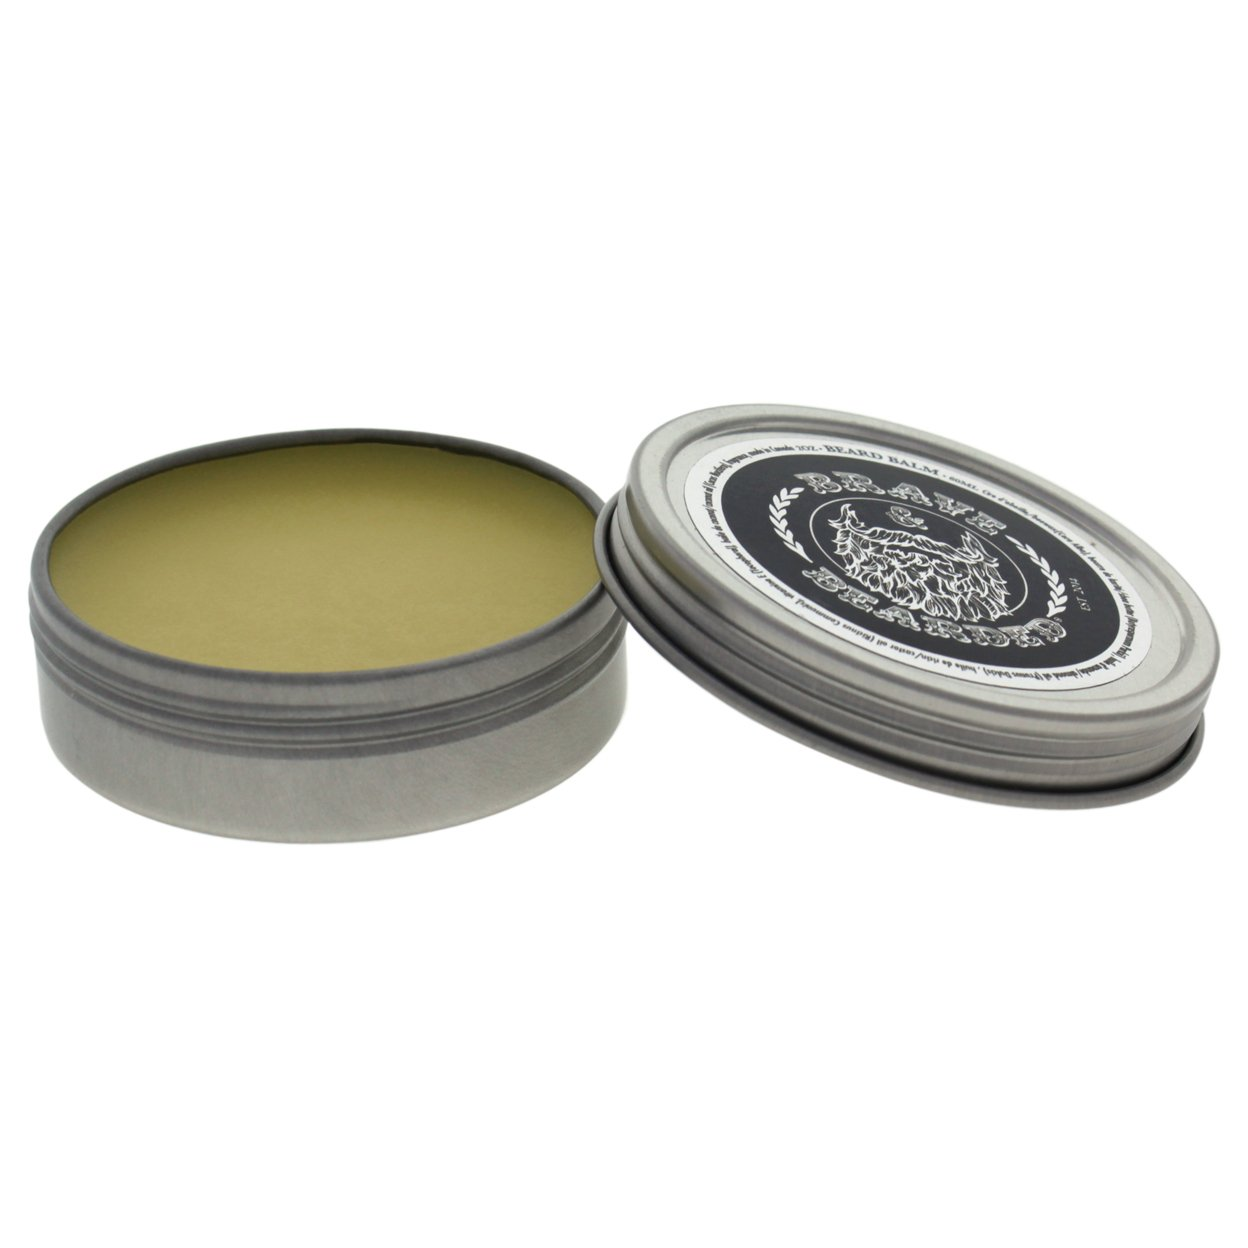 Beard Balm - Brave Soul by Brave & Bearded for Men - 2 oz Balm 593bc5d32a00e432673f59f2